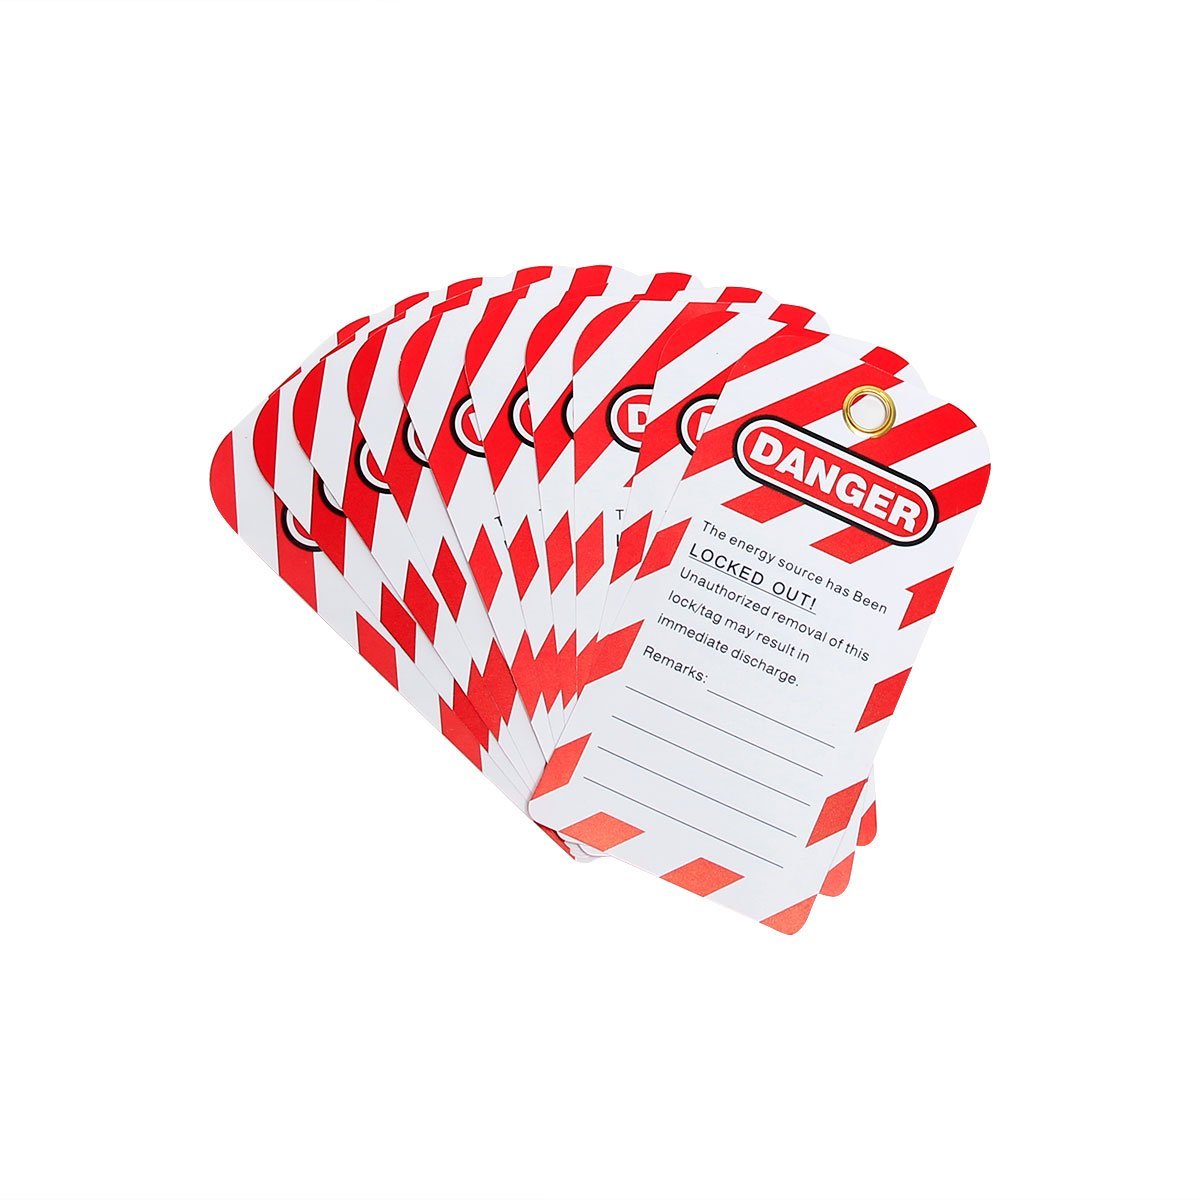 Wisamic 20 Pack Lockout Tag Red//Black on White 5.4x3 5.4x3,Danger DO NOT Operate Unrippable Vinyl